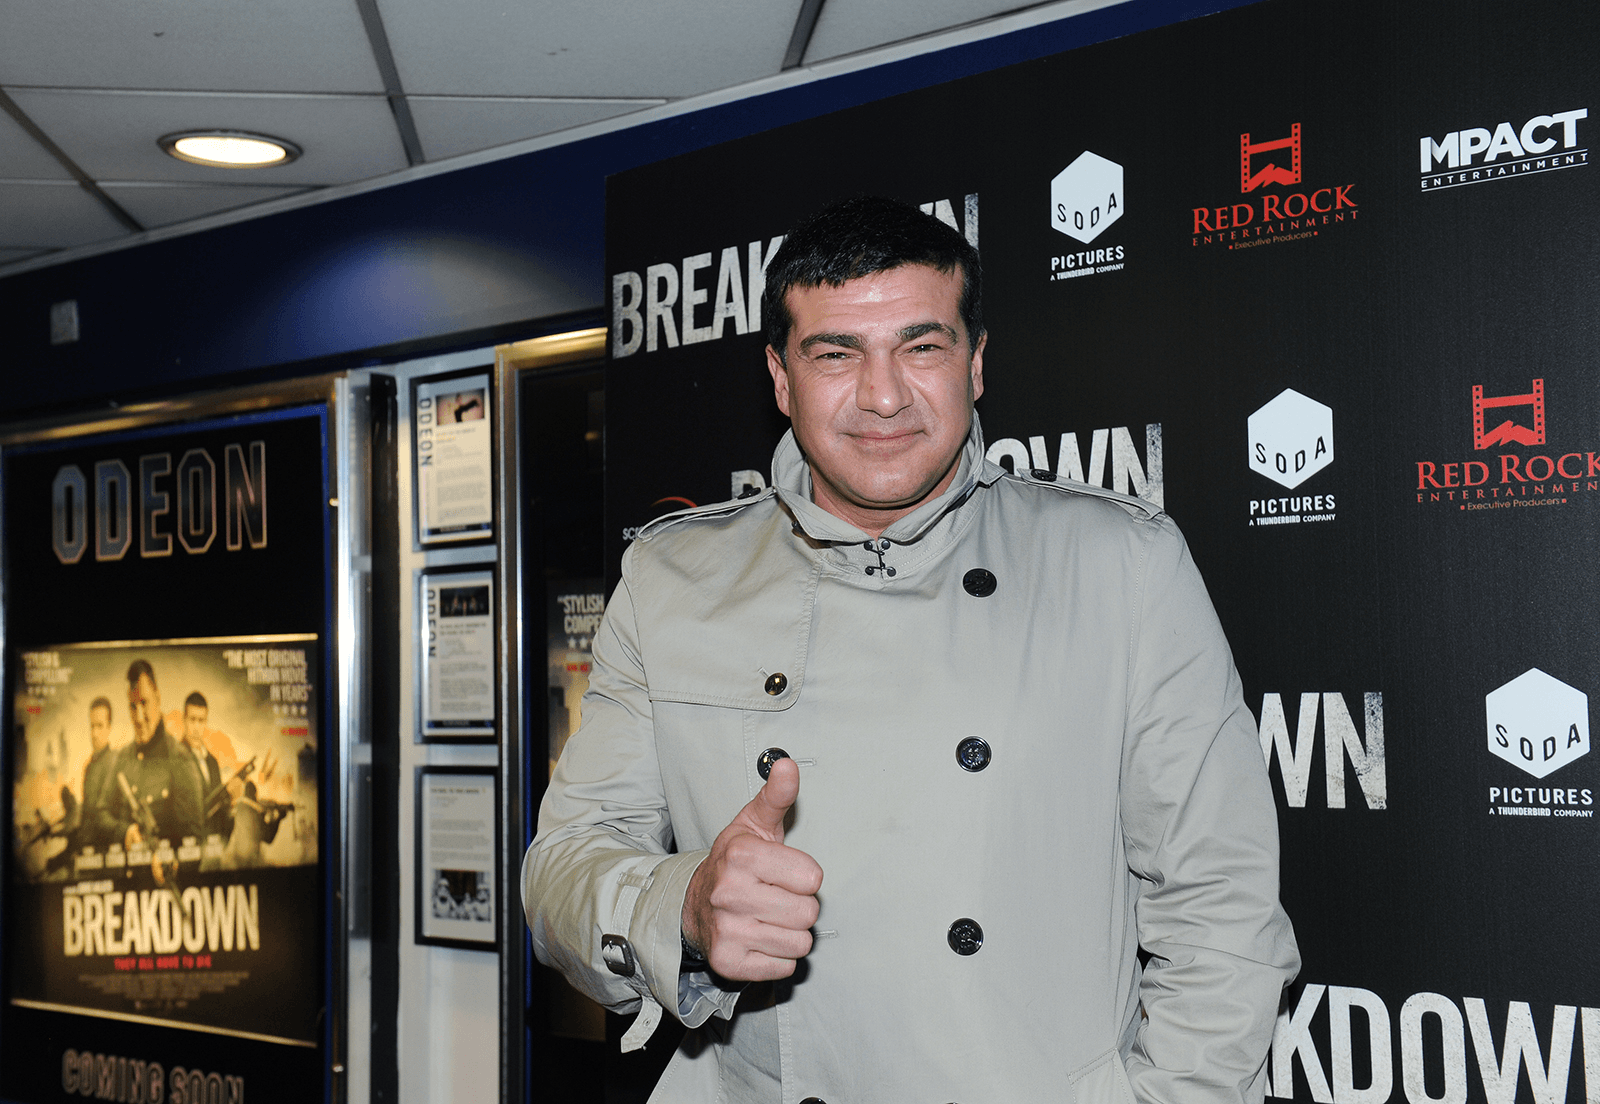 Tamer Hassan at the Breakdown premiere